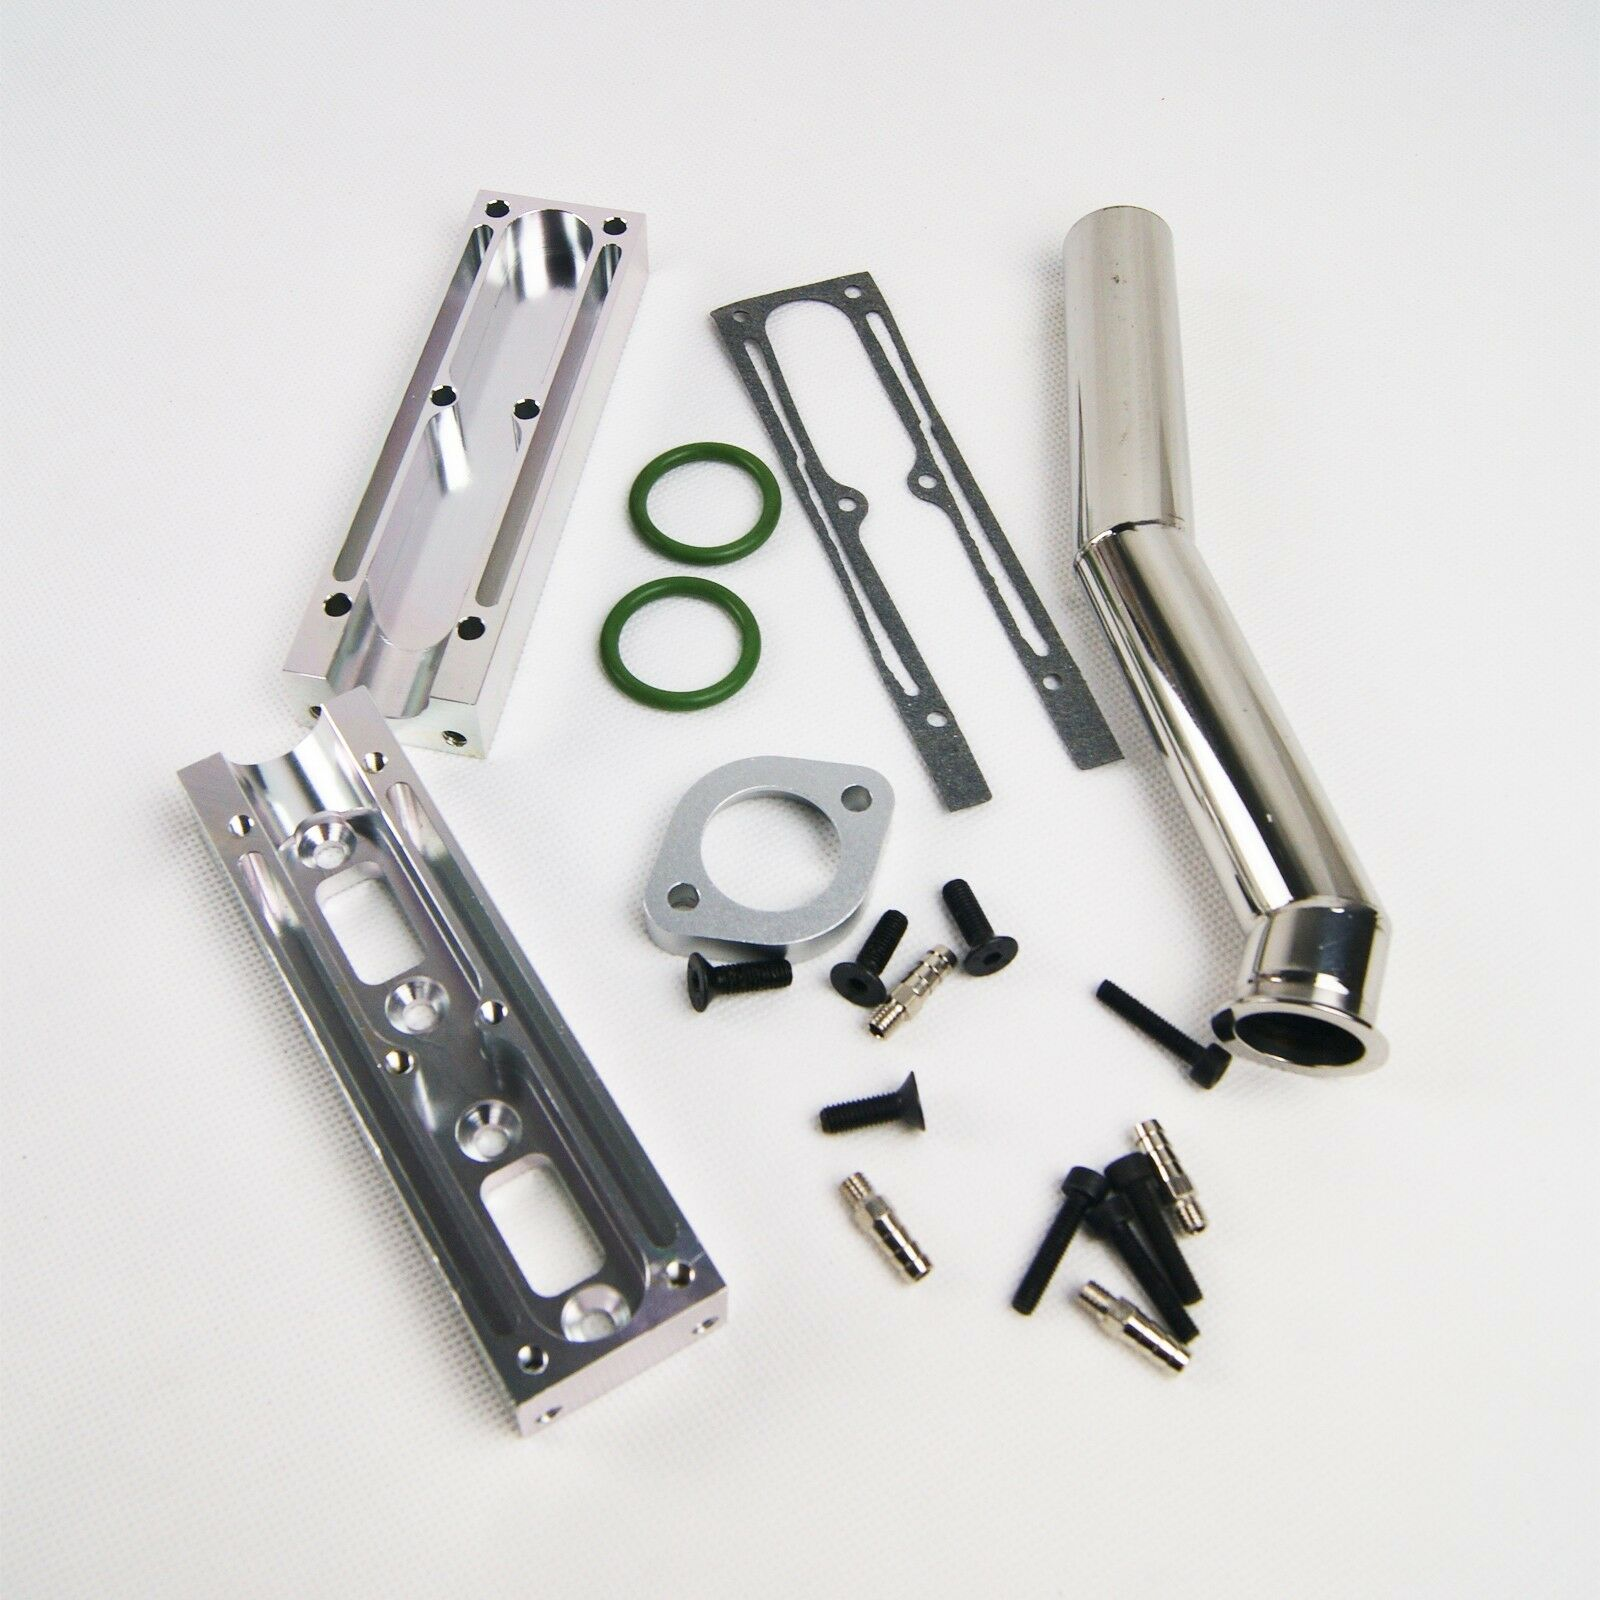 Comple Gas Boat Exhaust Pipe Header fit 52cc Inline Twin  Marine Engine K600S  online economico